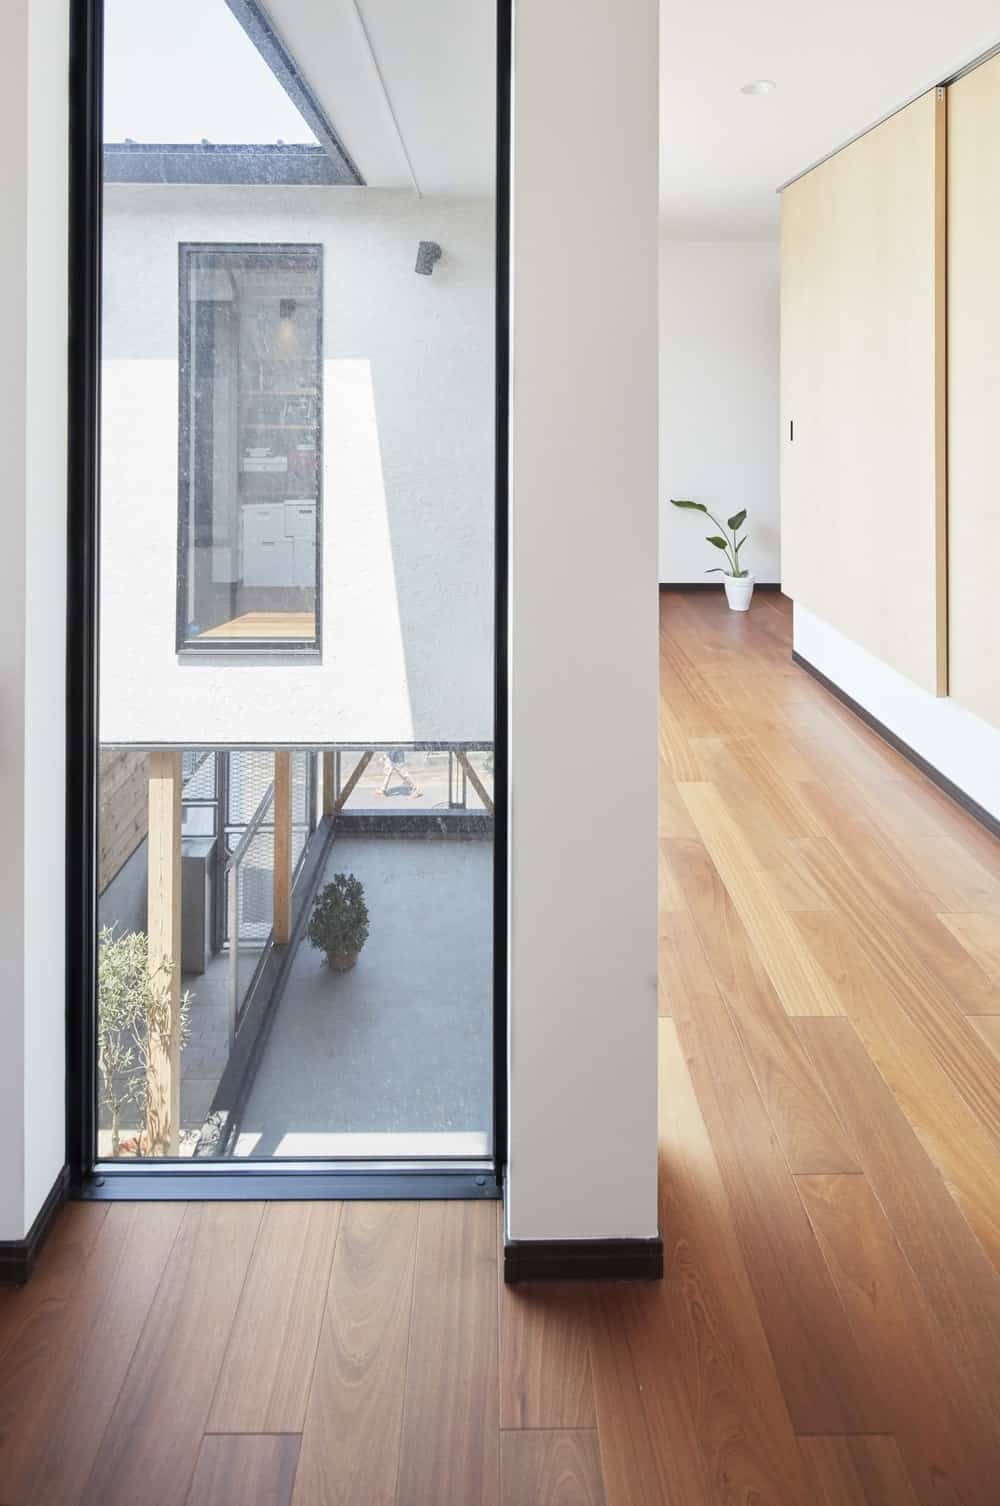 Hallway and full height window in the Triple Stilt House designed by Archidance.